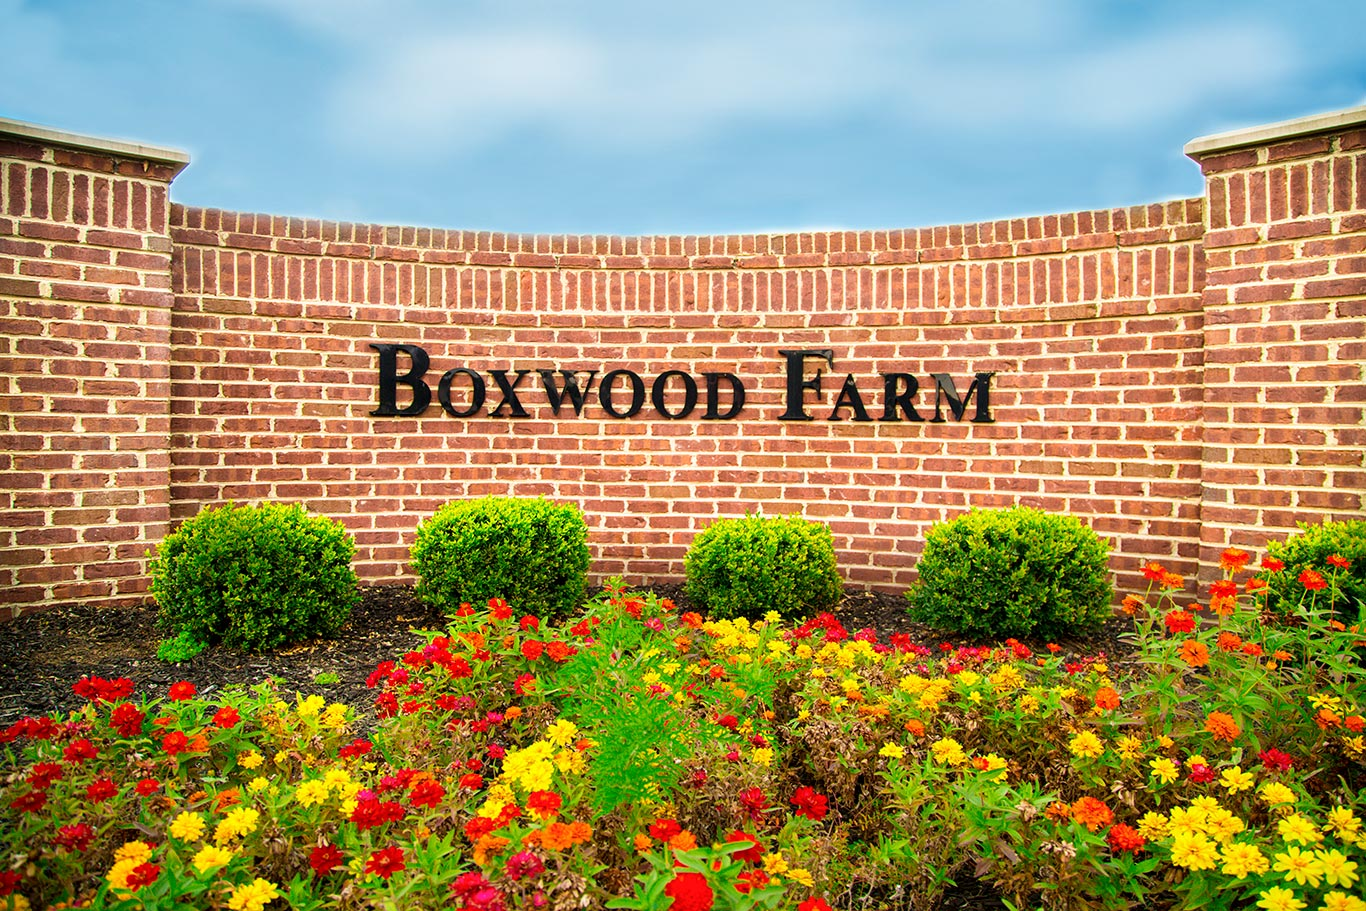 Boxwood Farm